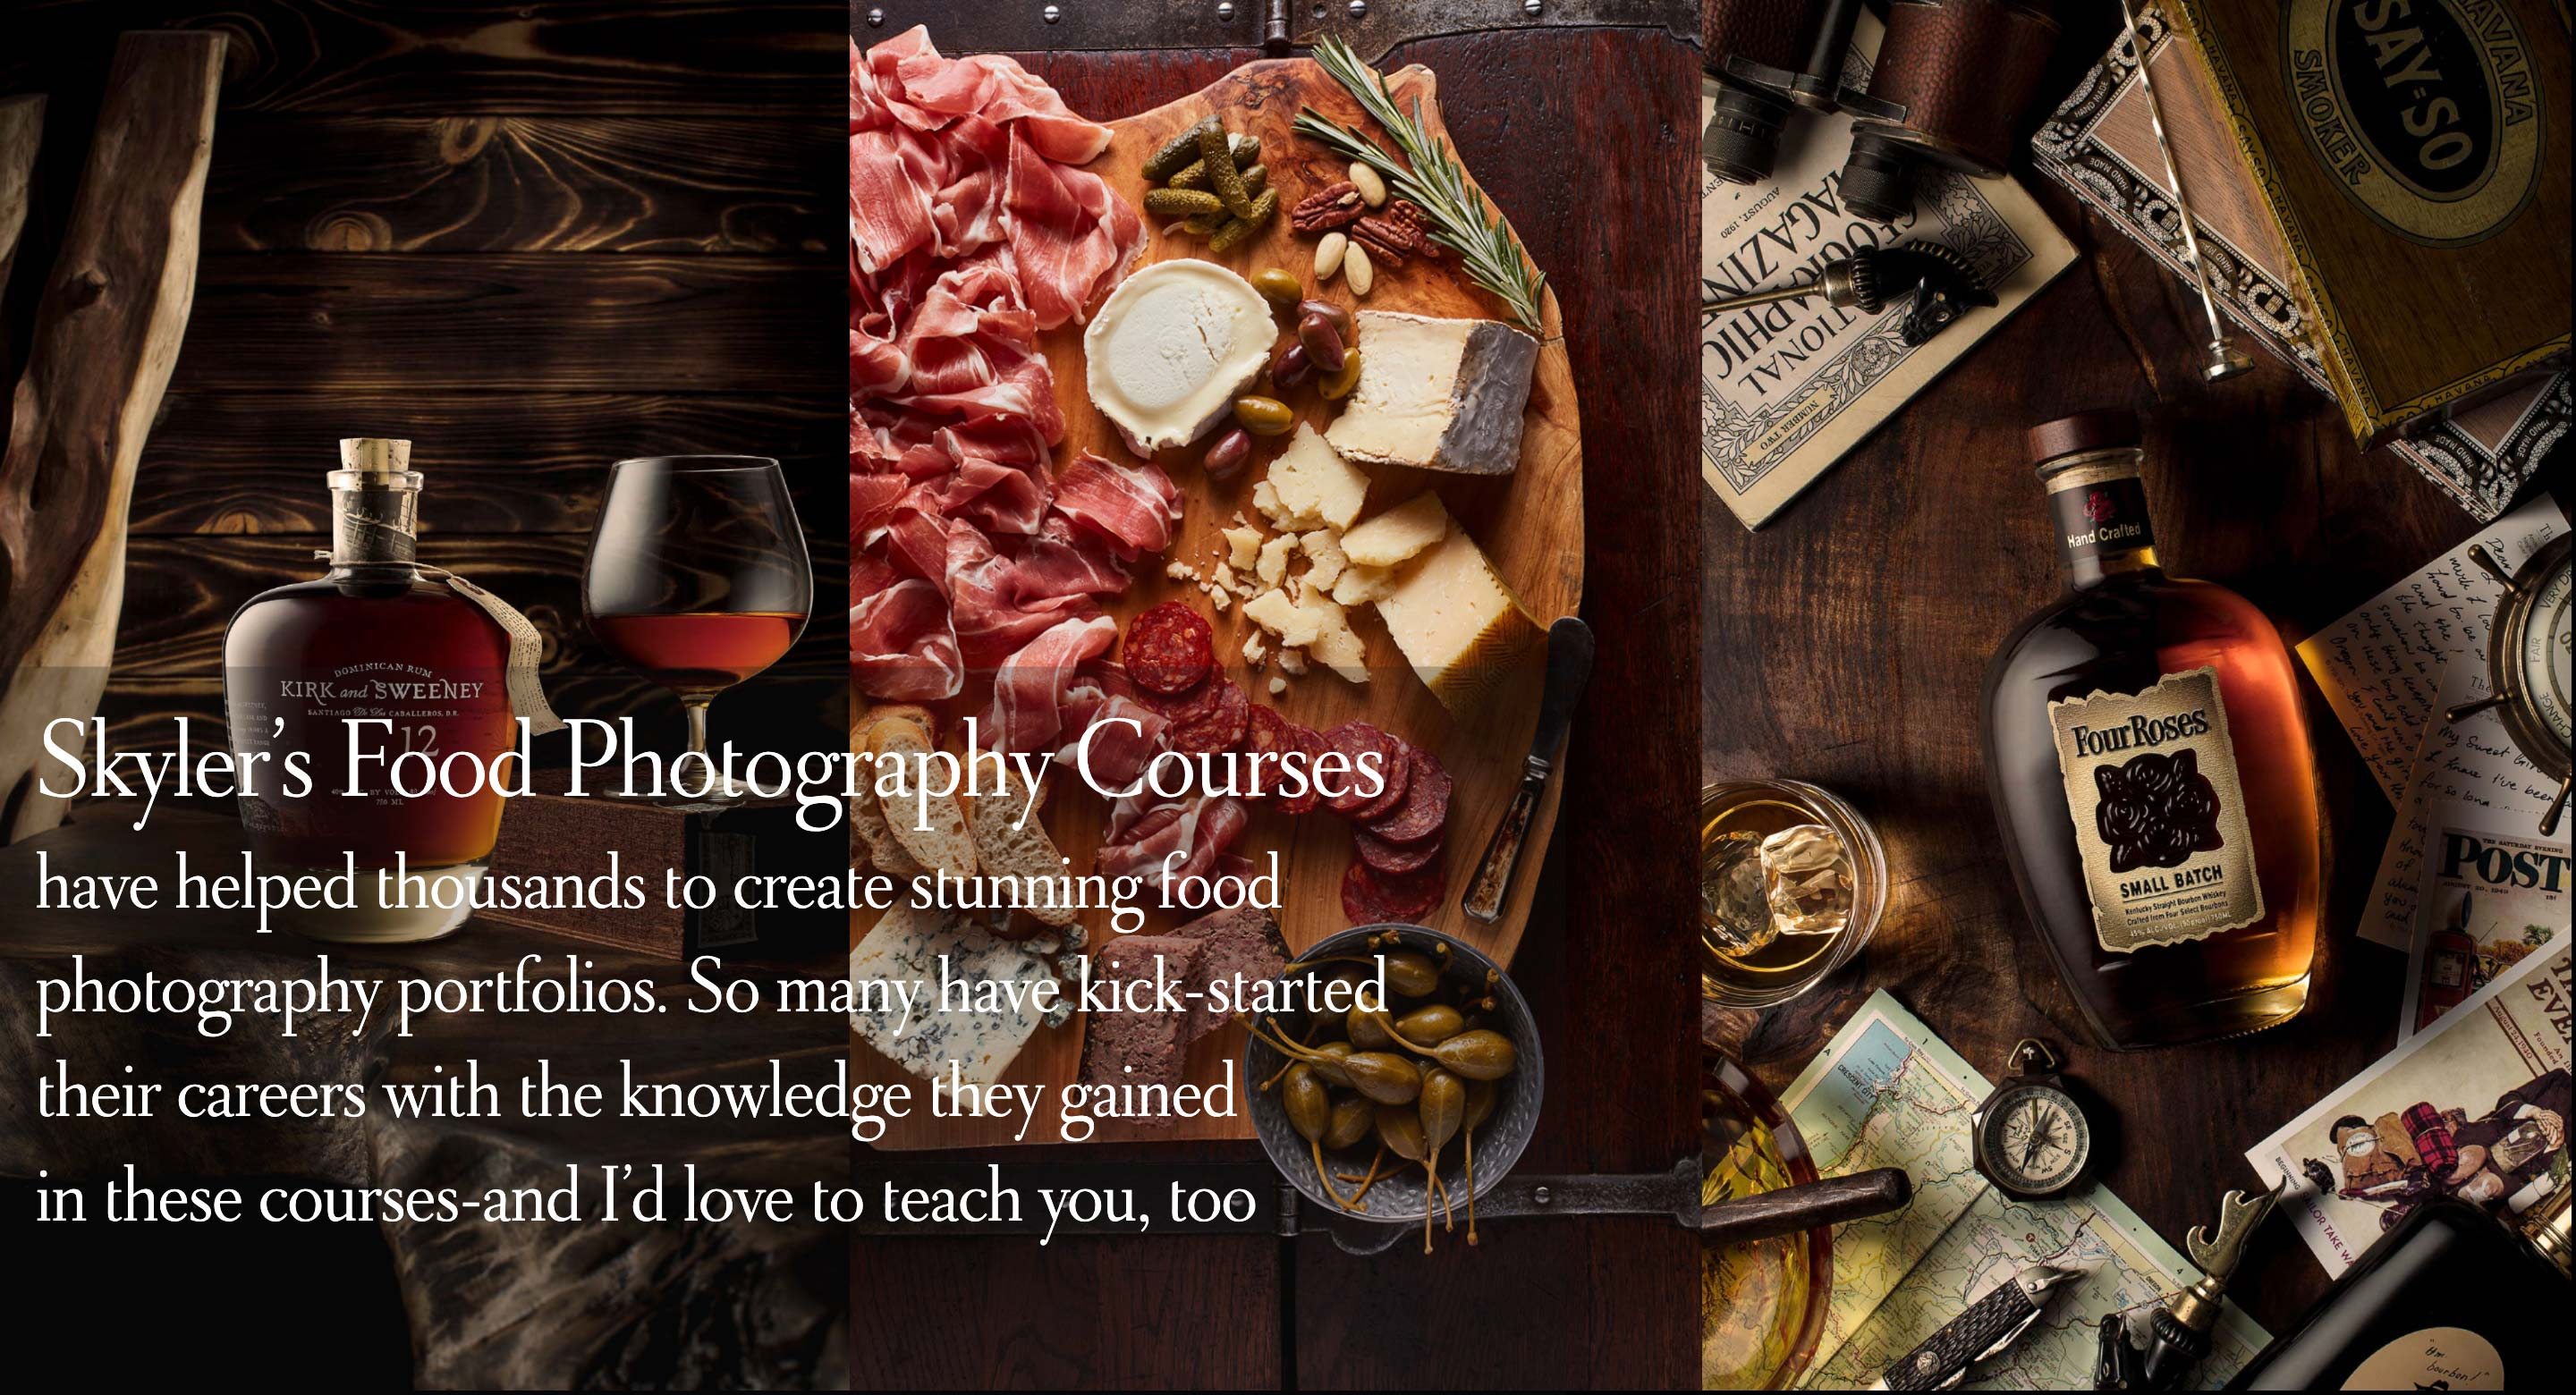 have helped thousands to create stunning food photography portfolios. So many have kick-started their careers with the knowledge they gained in these courses-and I'd love to teach you, too